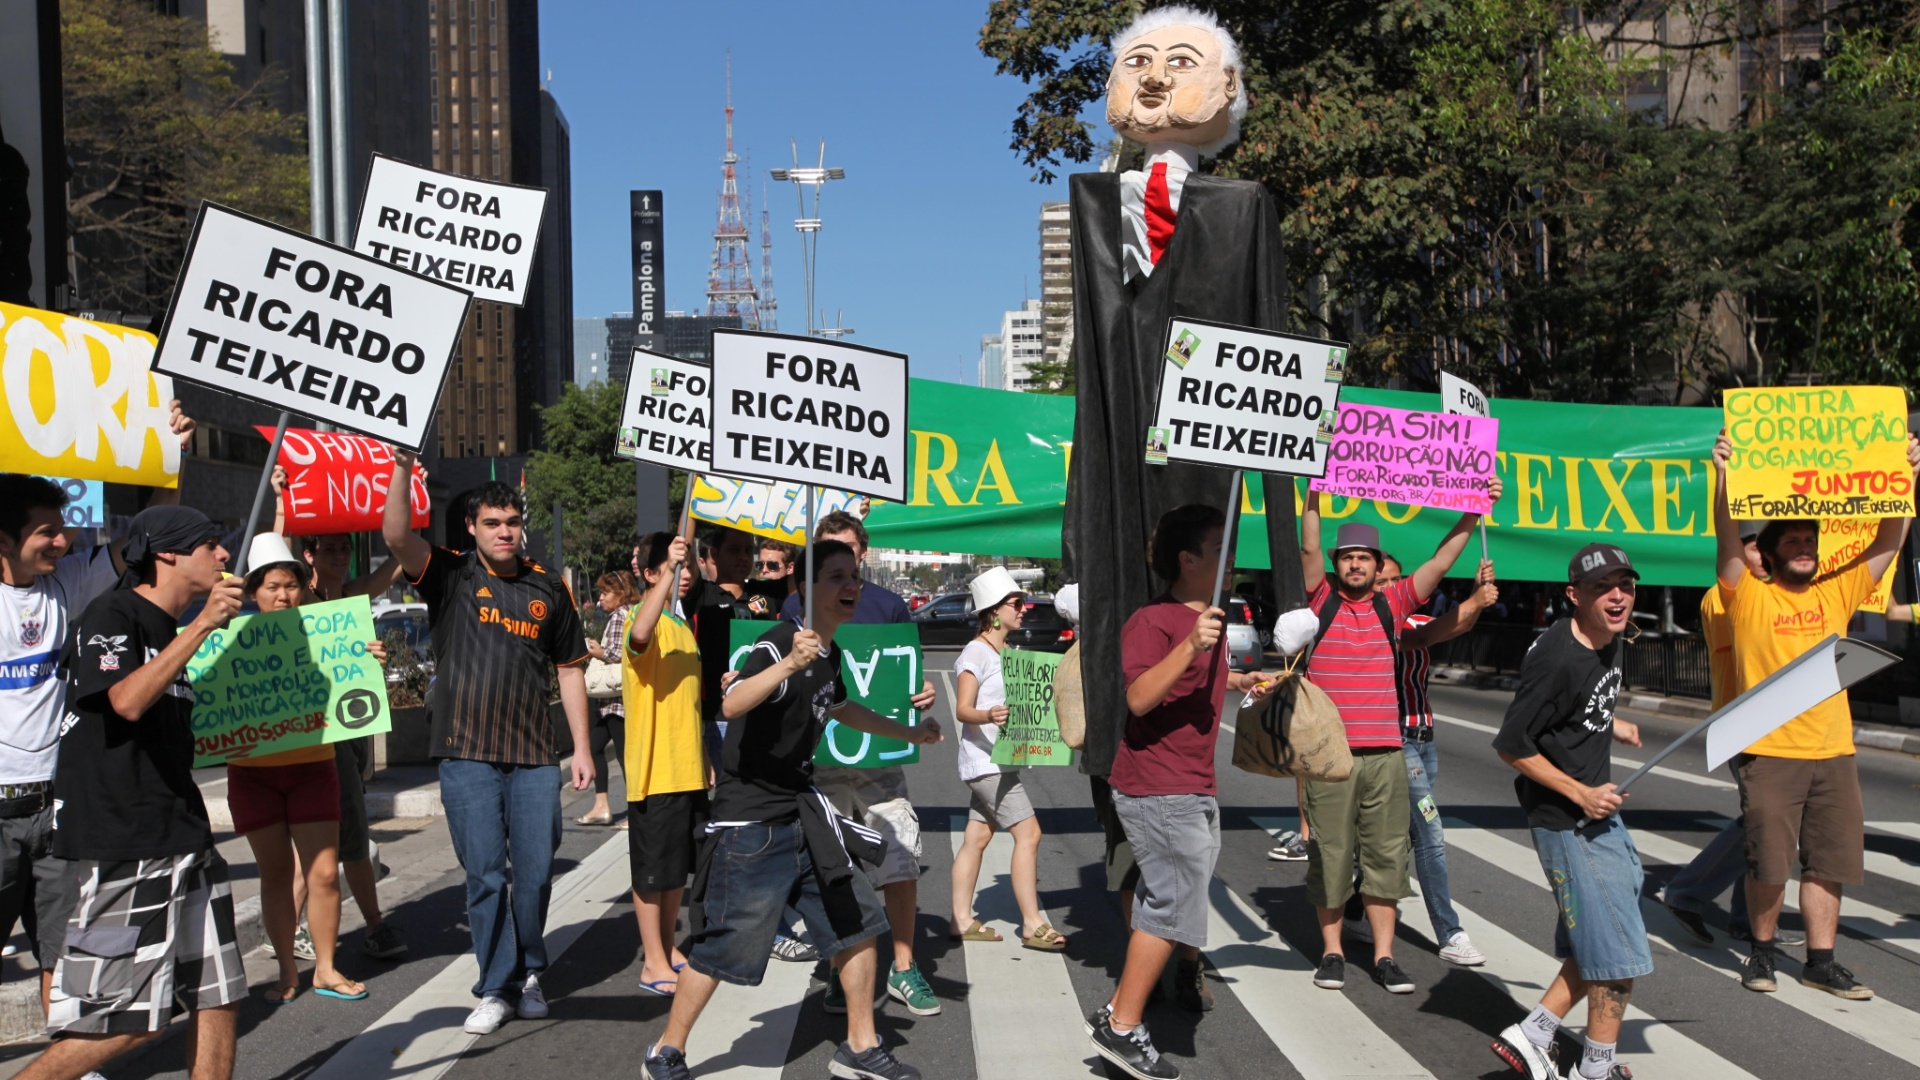 Jovens tomam um dos lados da Paulista na manifestao contra Ricardo Teixeira (13/08/2011)